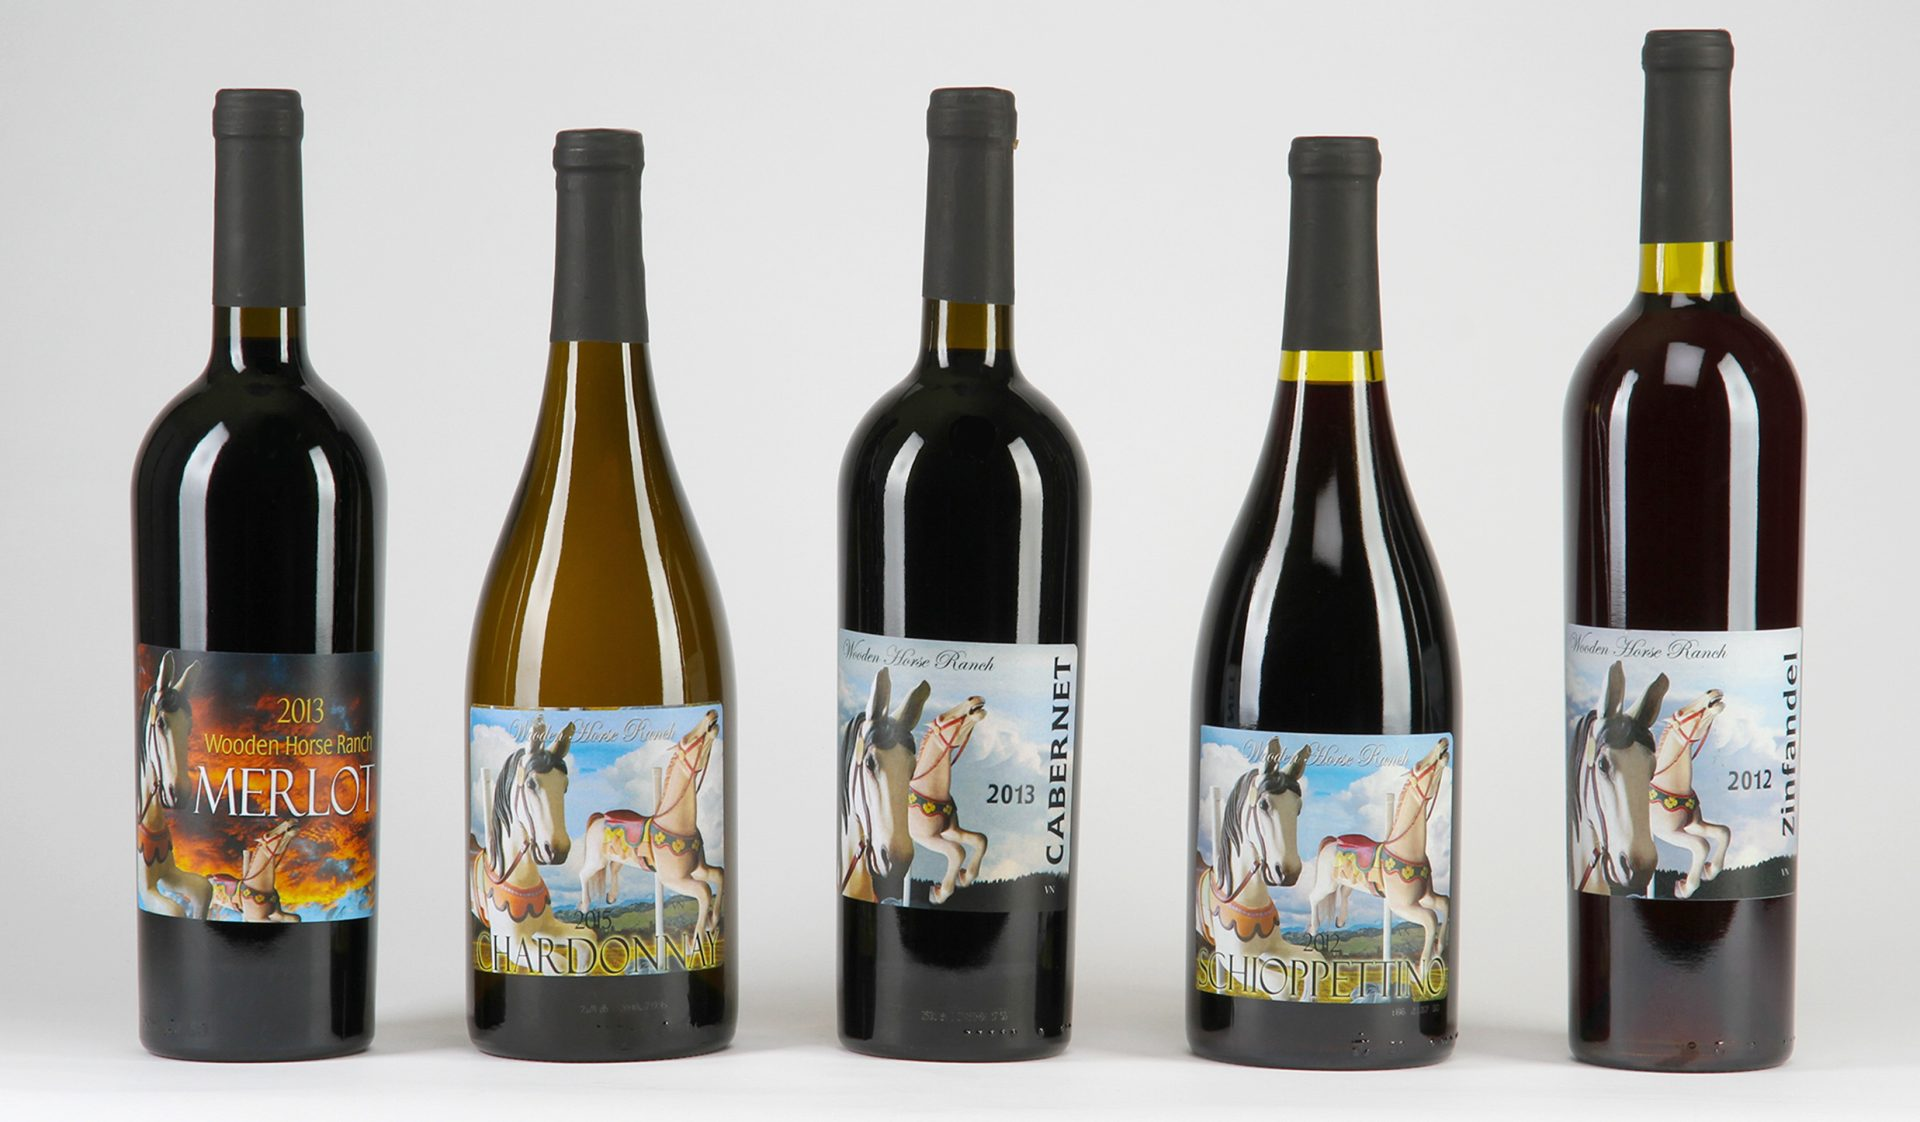 Wooden Horse Ranch wines